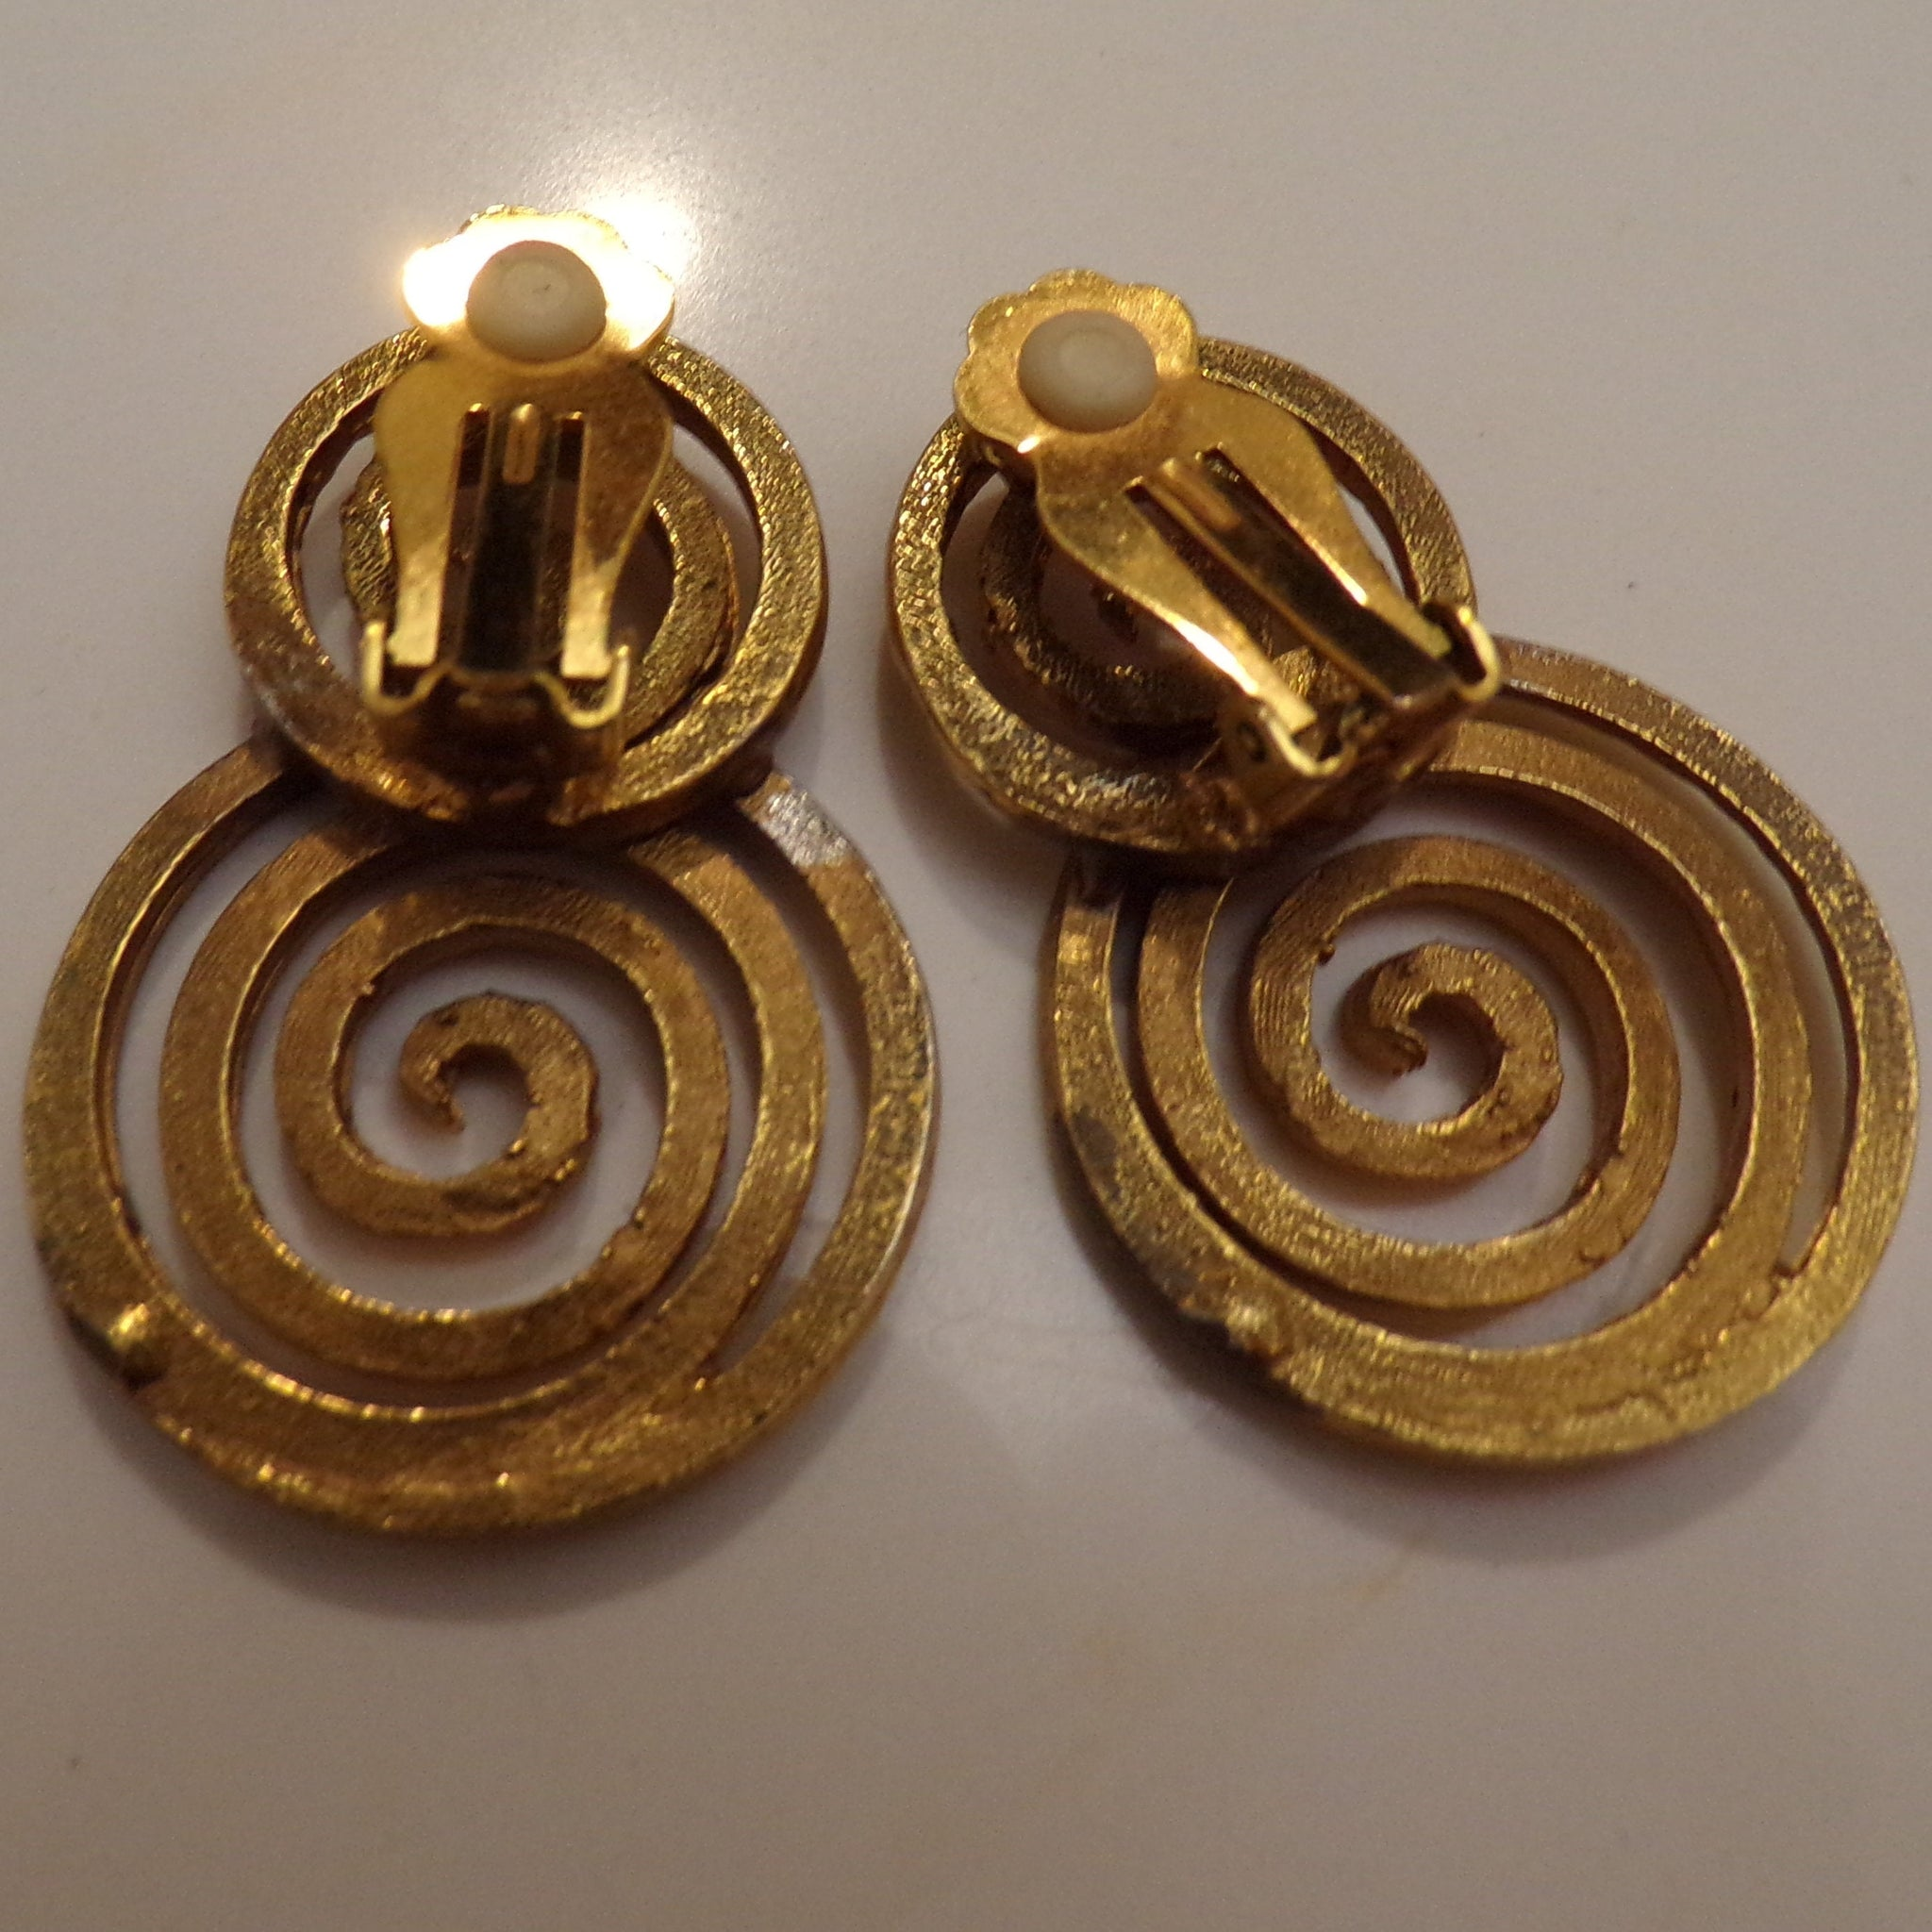 1980s 1990s SPIRAL BEADED NECKLACE and earrings set